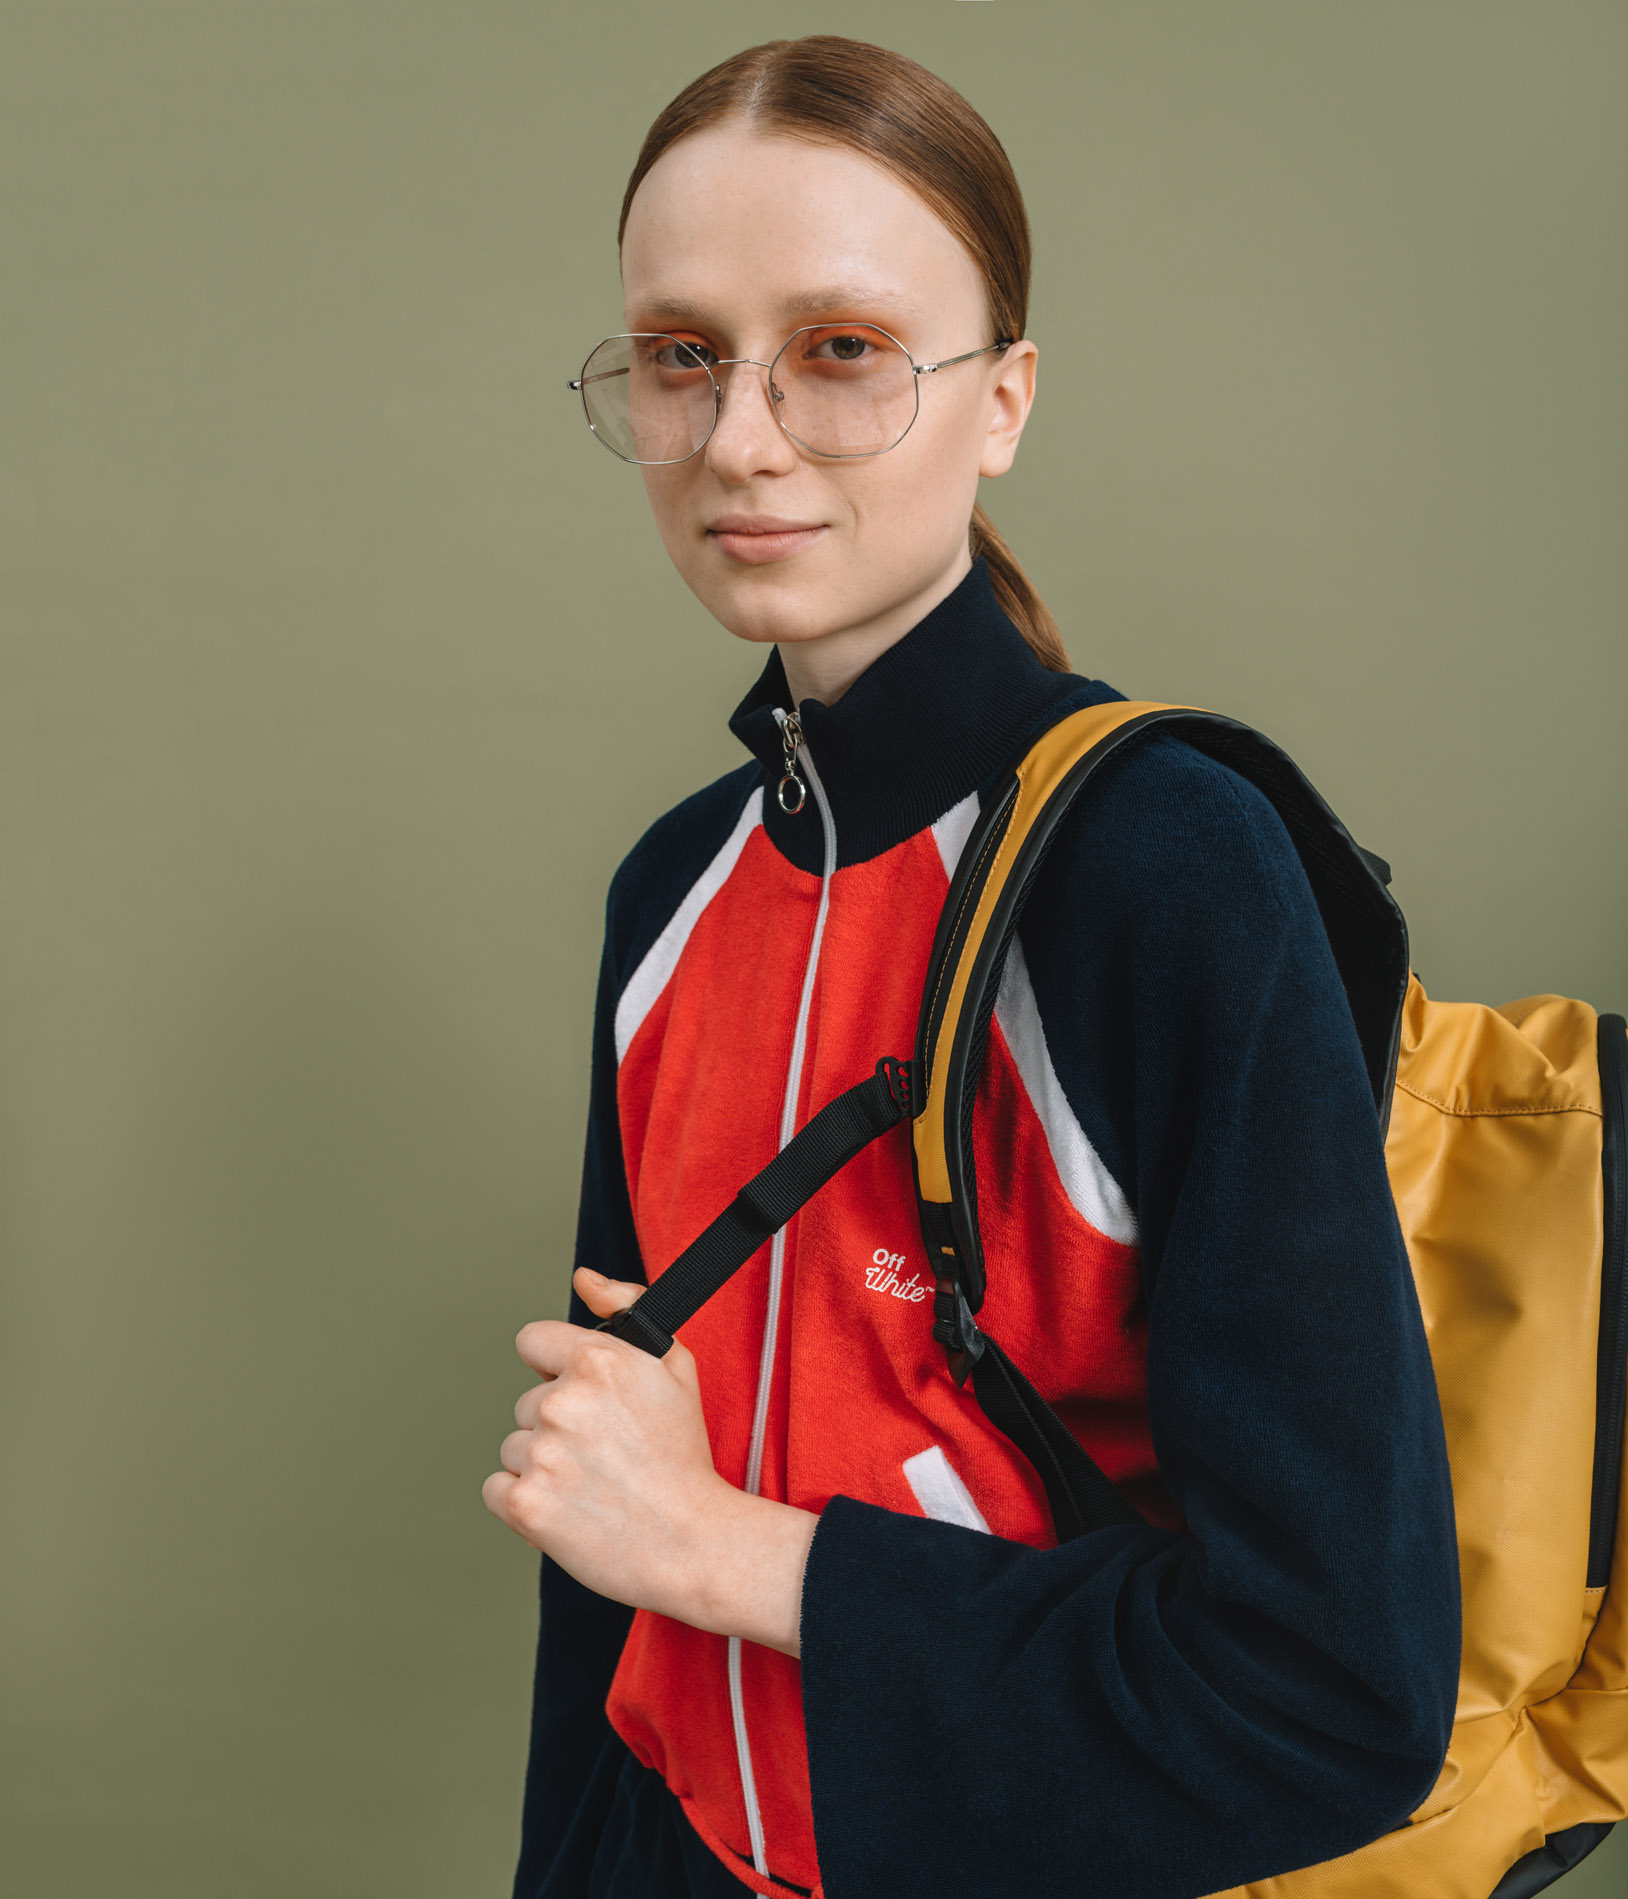 Jumpsuit Off-White,  Glasses Andy Wolf,  Backpack Samsonite